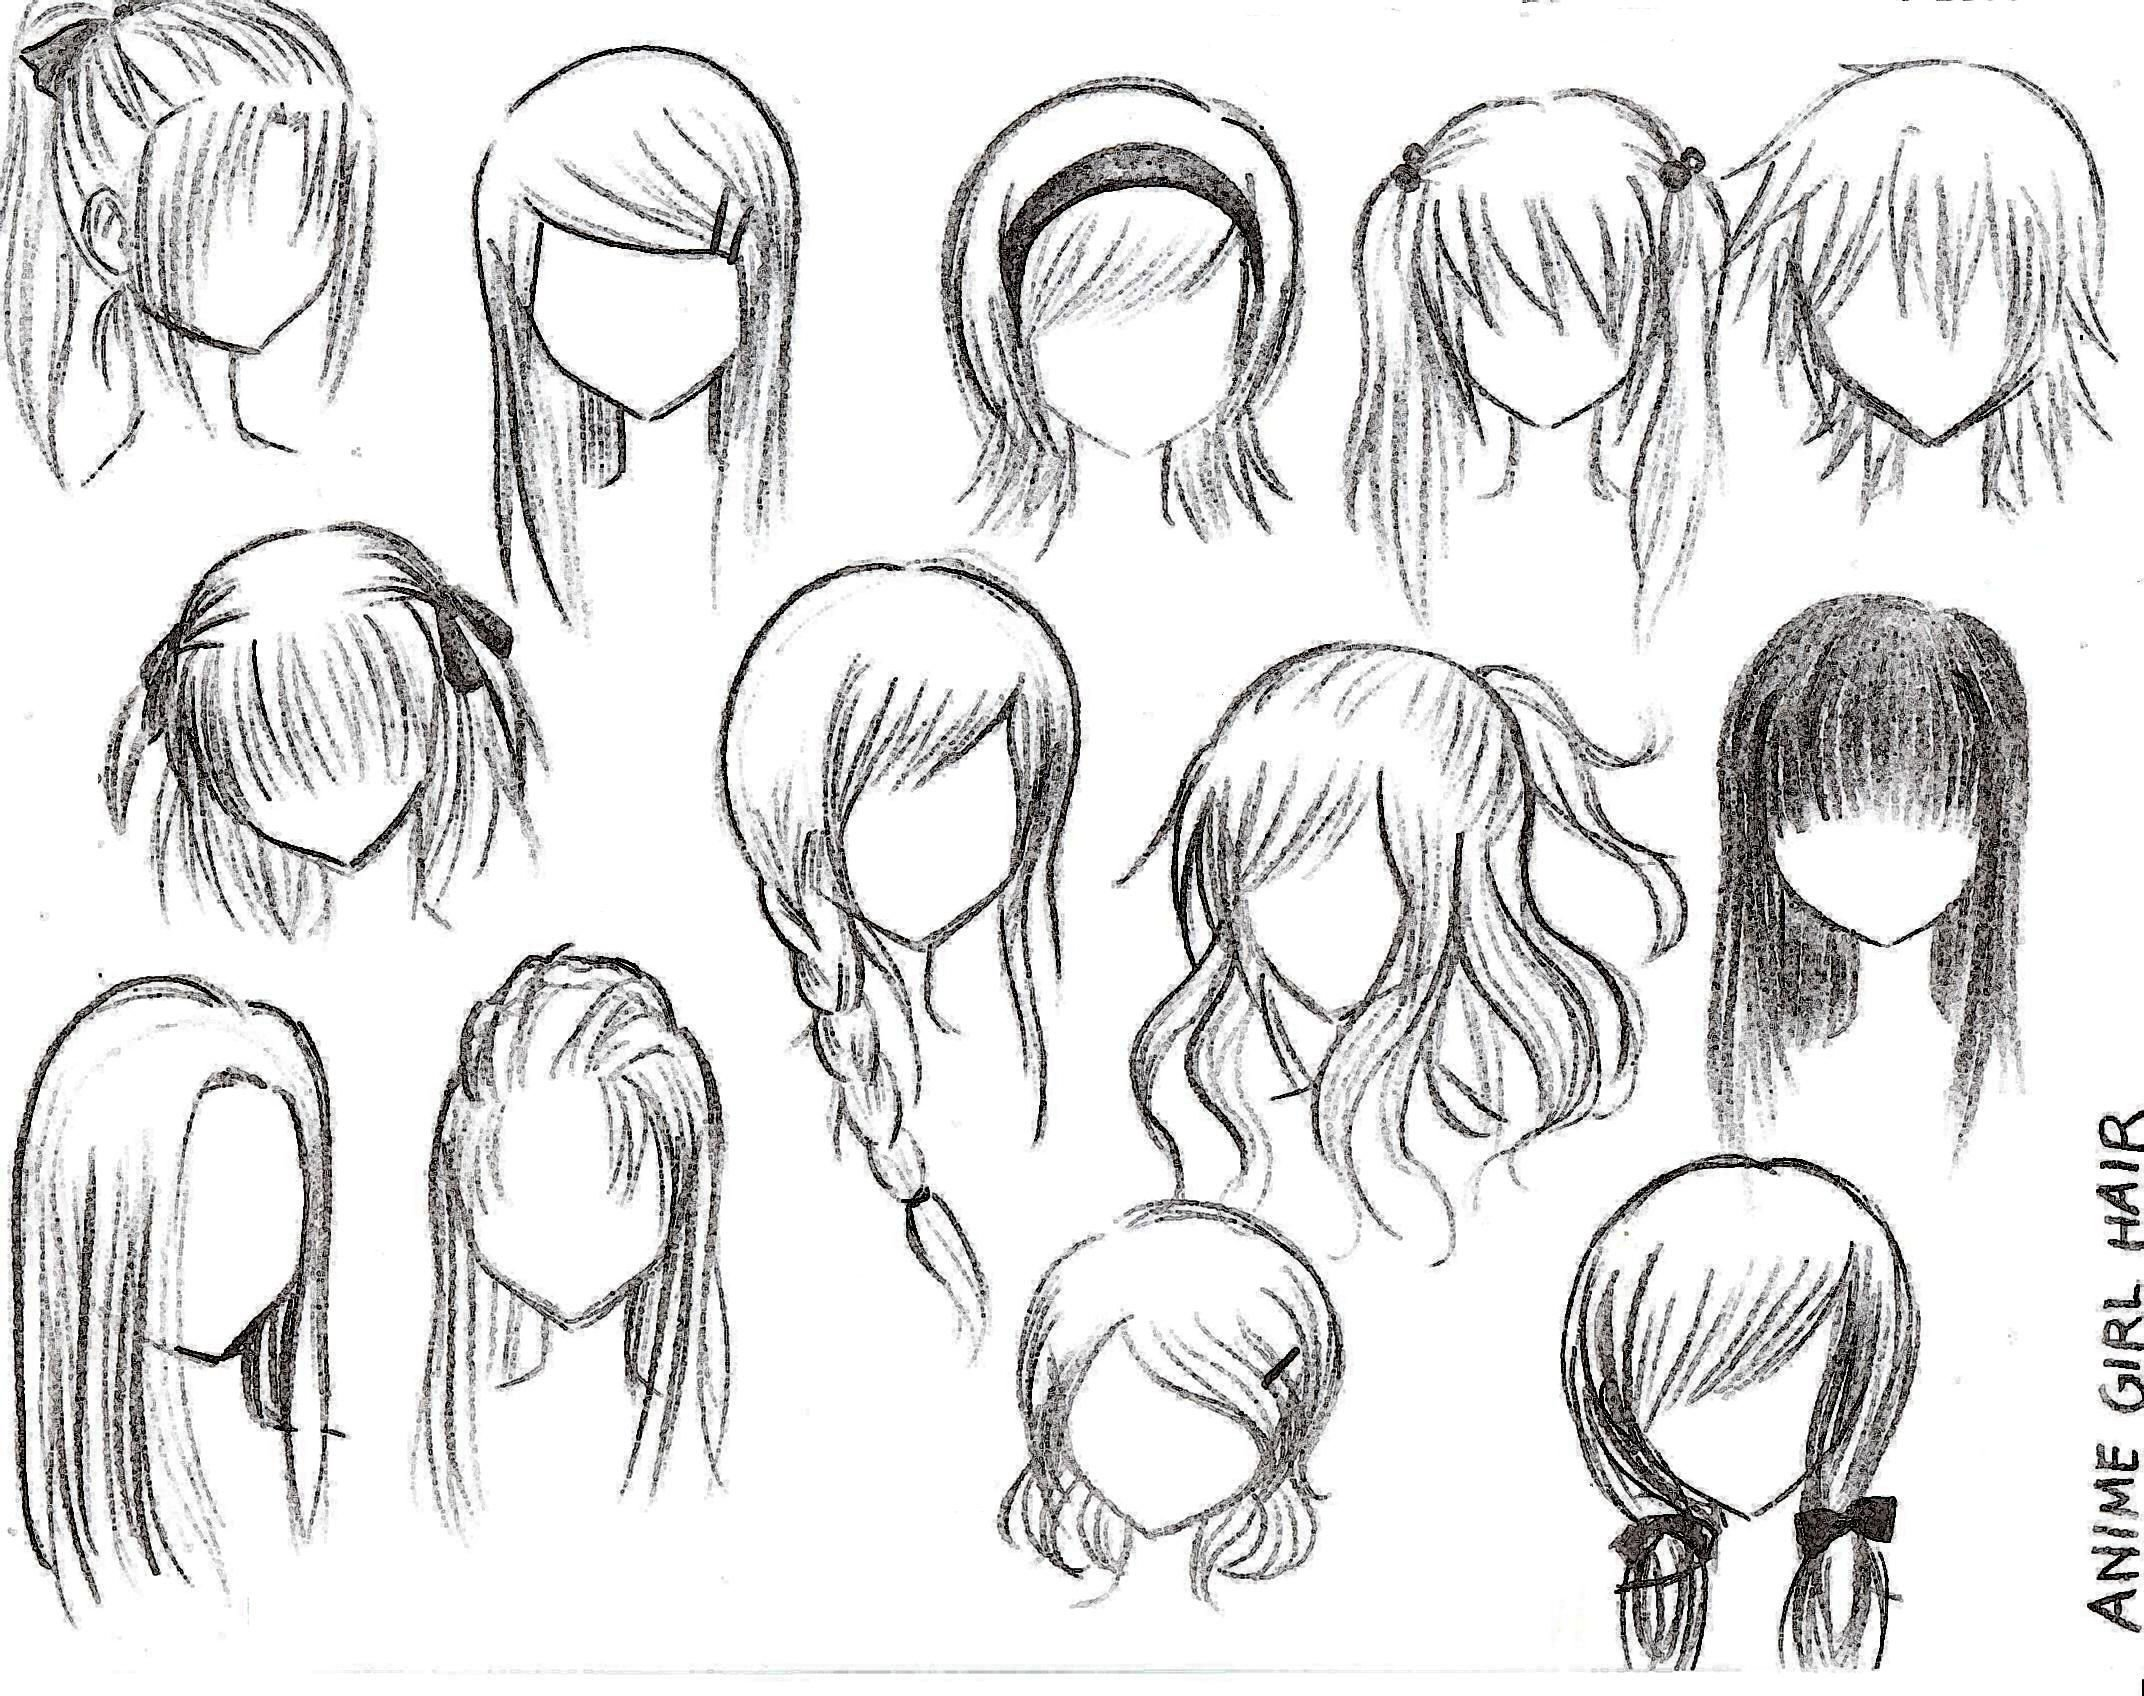 The Best Anime Hairstyles On Pinterest Anime Hair Anime Eyes And Pictures